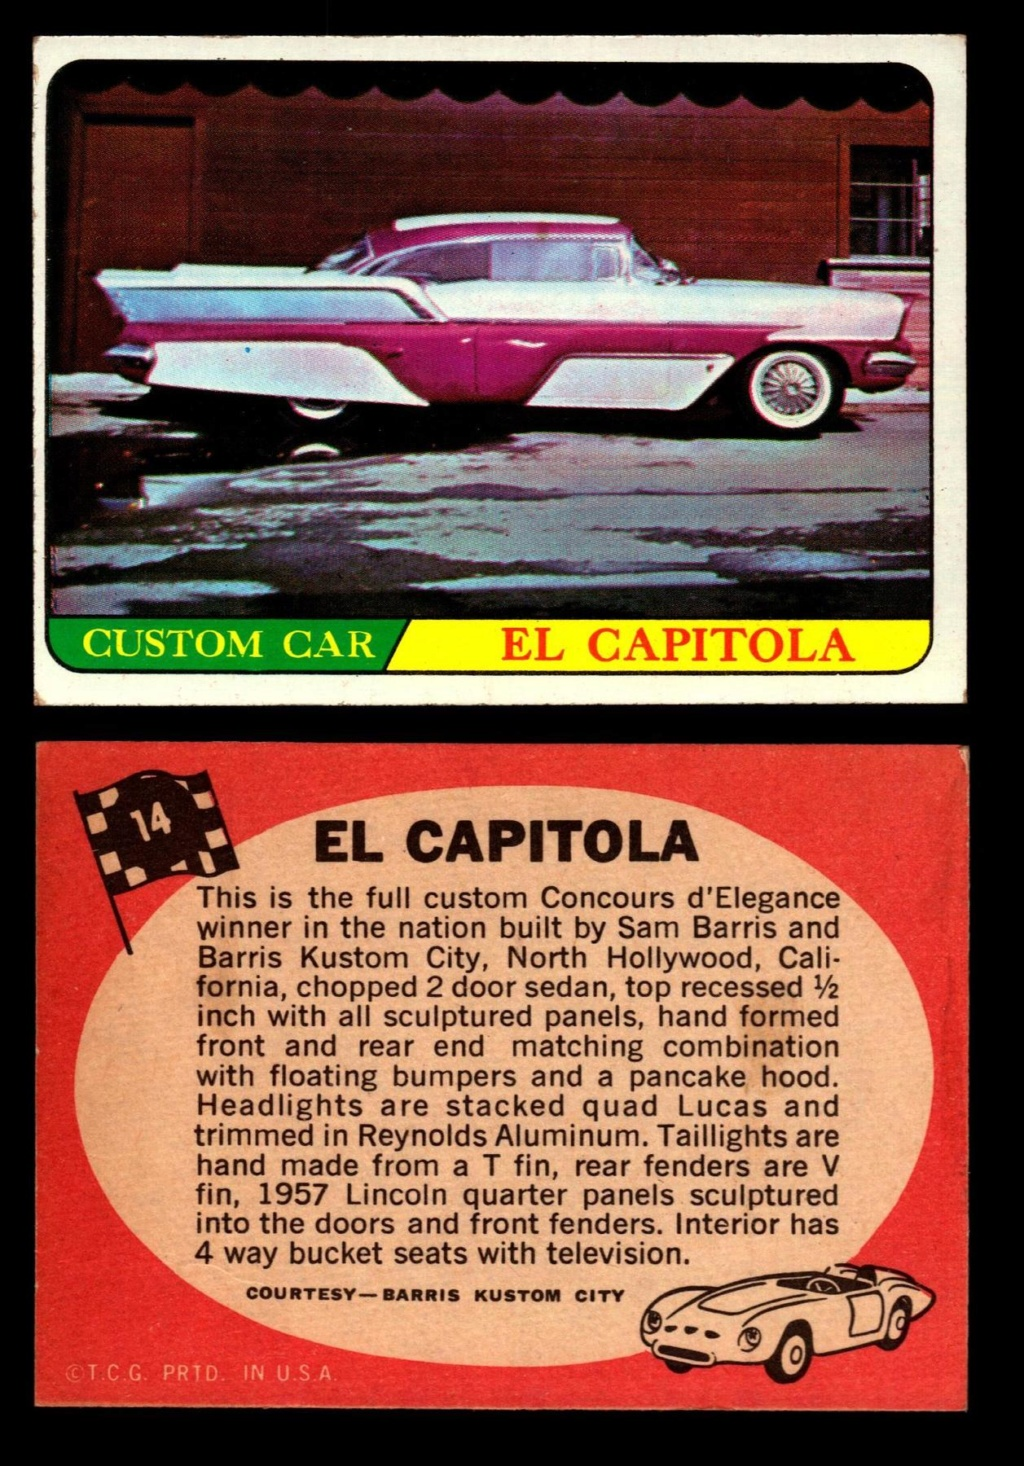 Hot Rods Topps - Vintage Trading Cards 1968 - Custom car - Dragster - Racer - Dream car - Barris Kustom City - Ed Roth Darrill Starbird, Gene Winfield, Bill Cuchenberry 14_80511